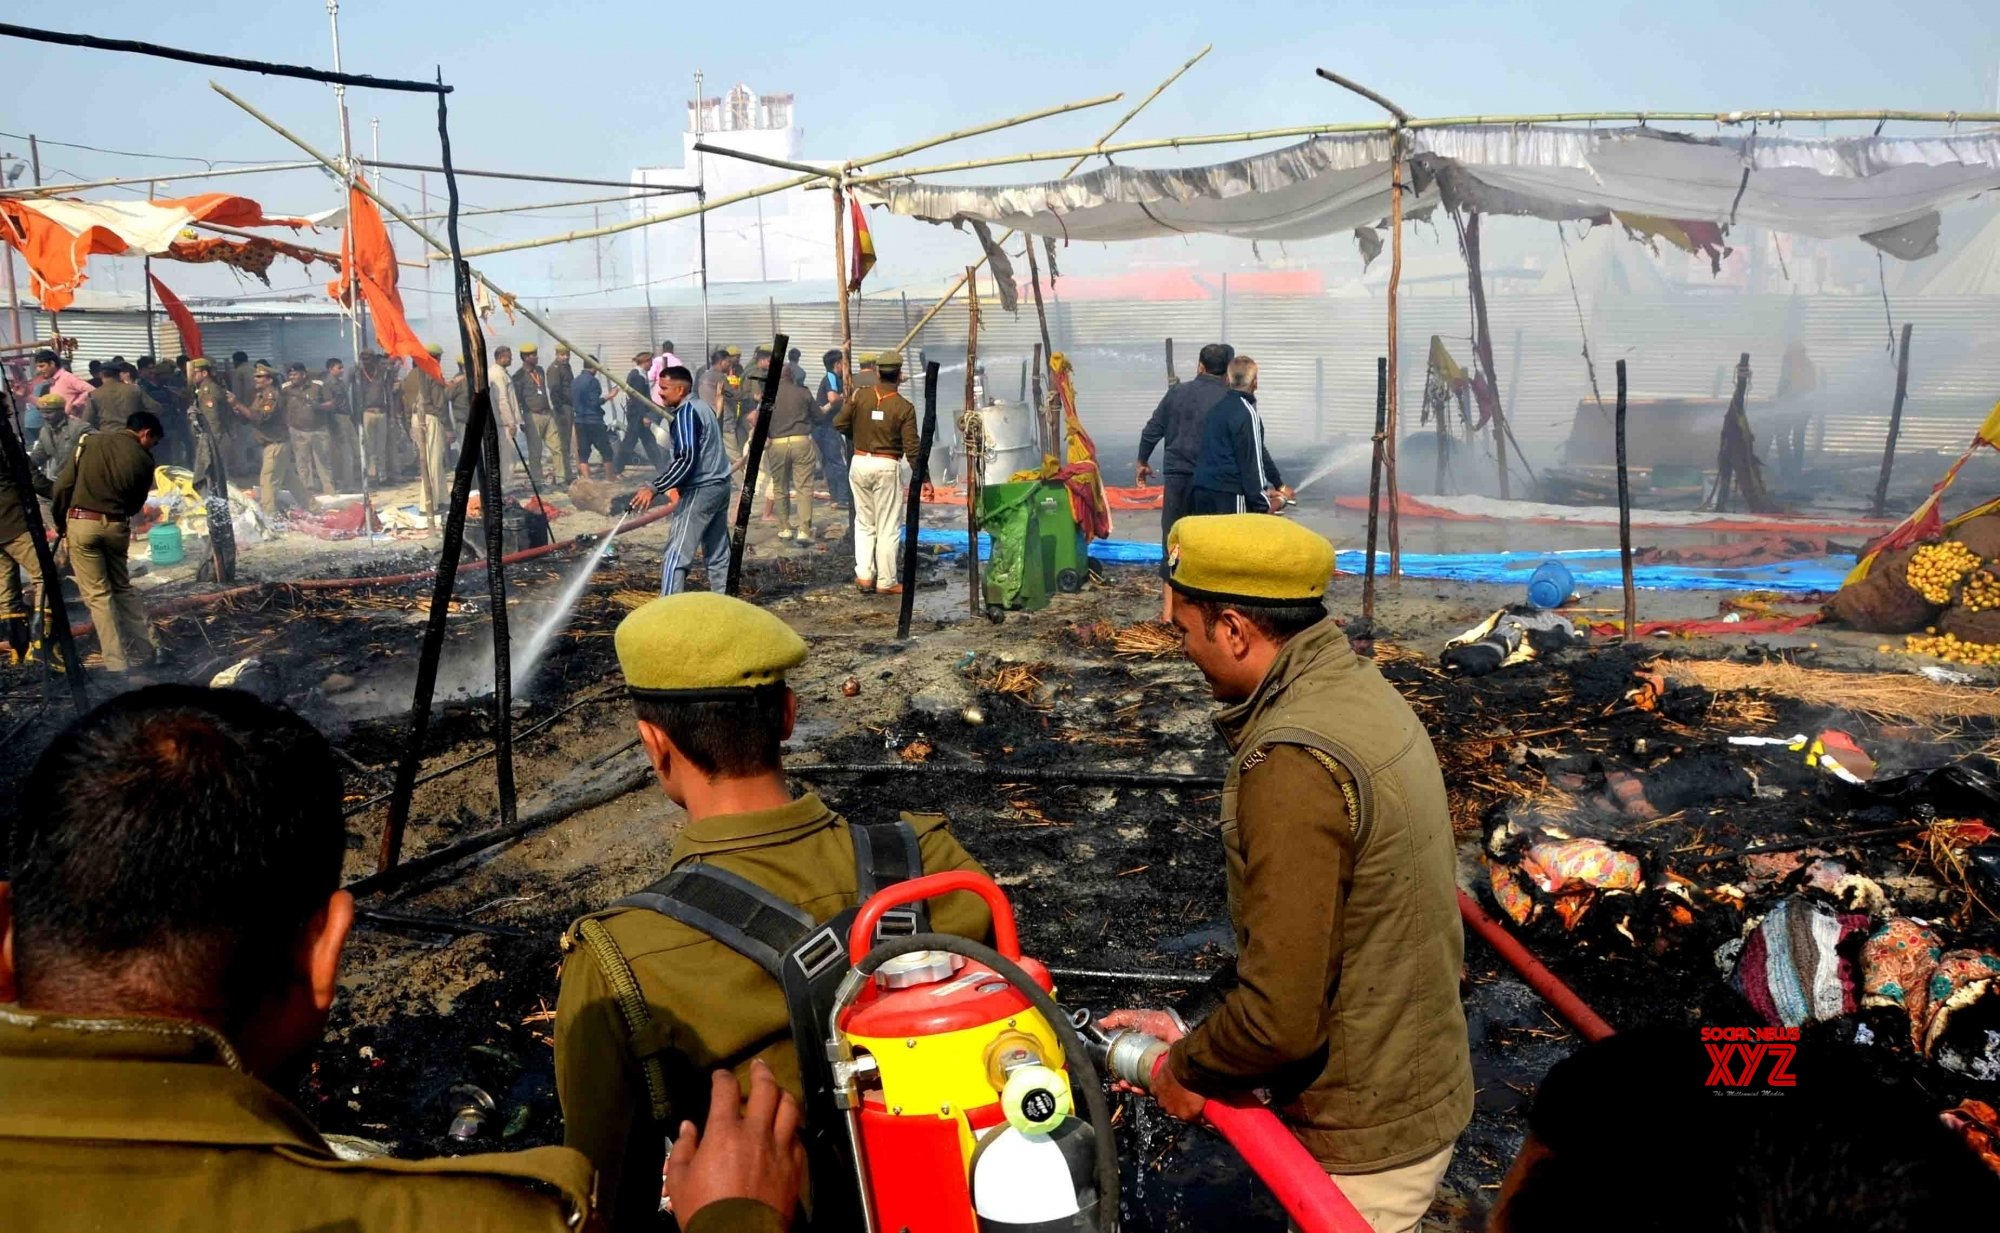 Fire at Kumbh destroys tents, none injured